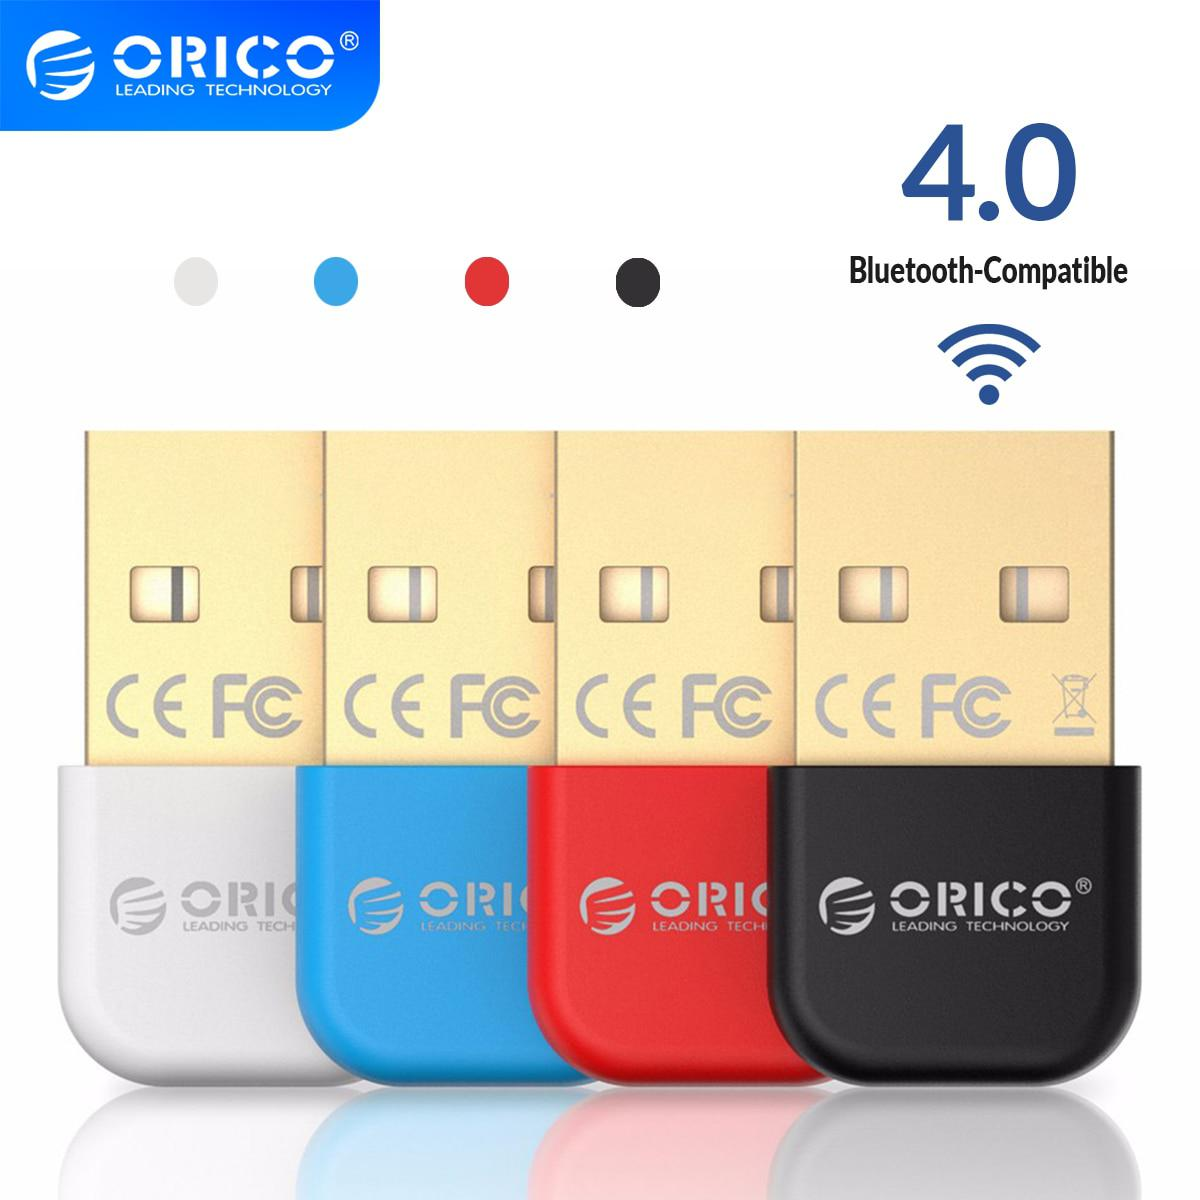 Orico bta inalámbrico adaptador bluetooth usb 4.0 dongle bluetooth music